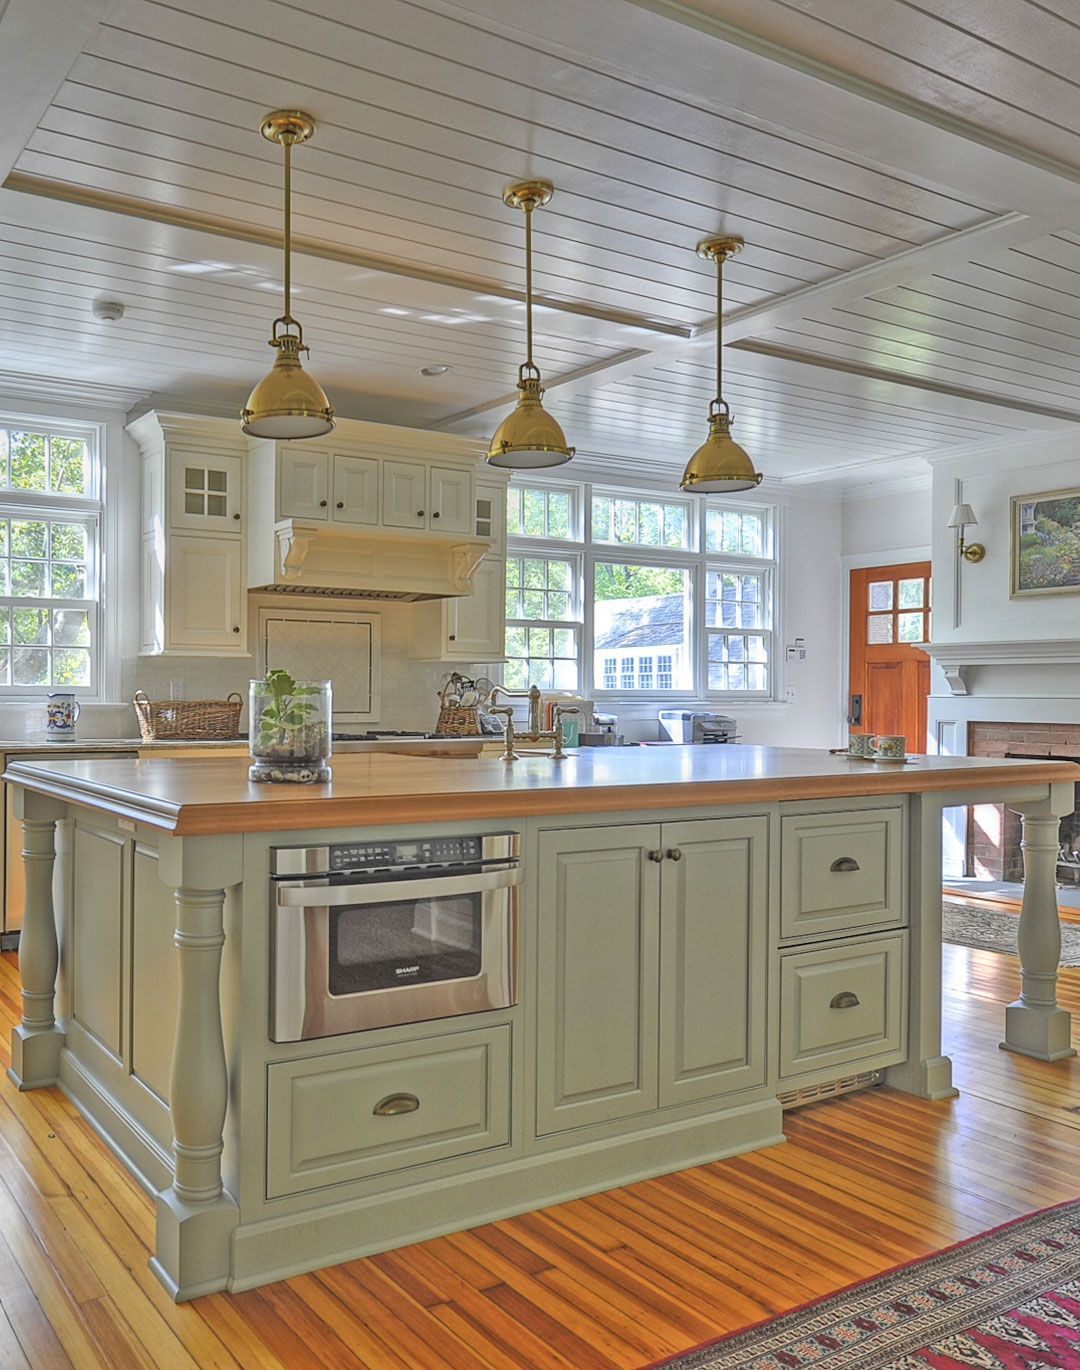 Pleasing traditional kitchen cabinets plain u fancy cabinetry